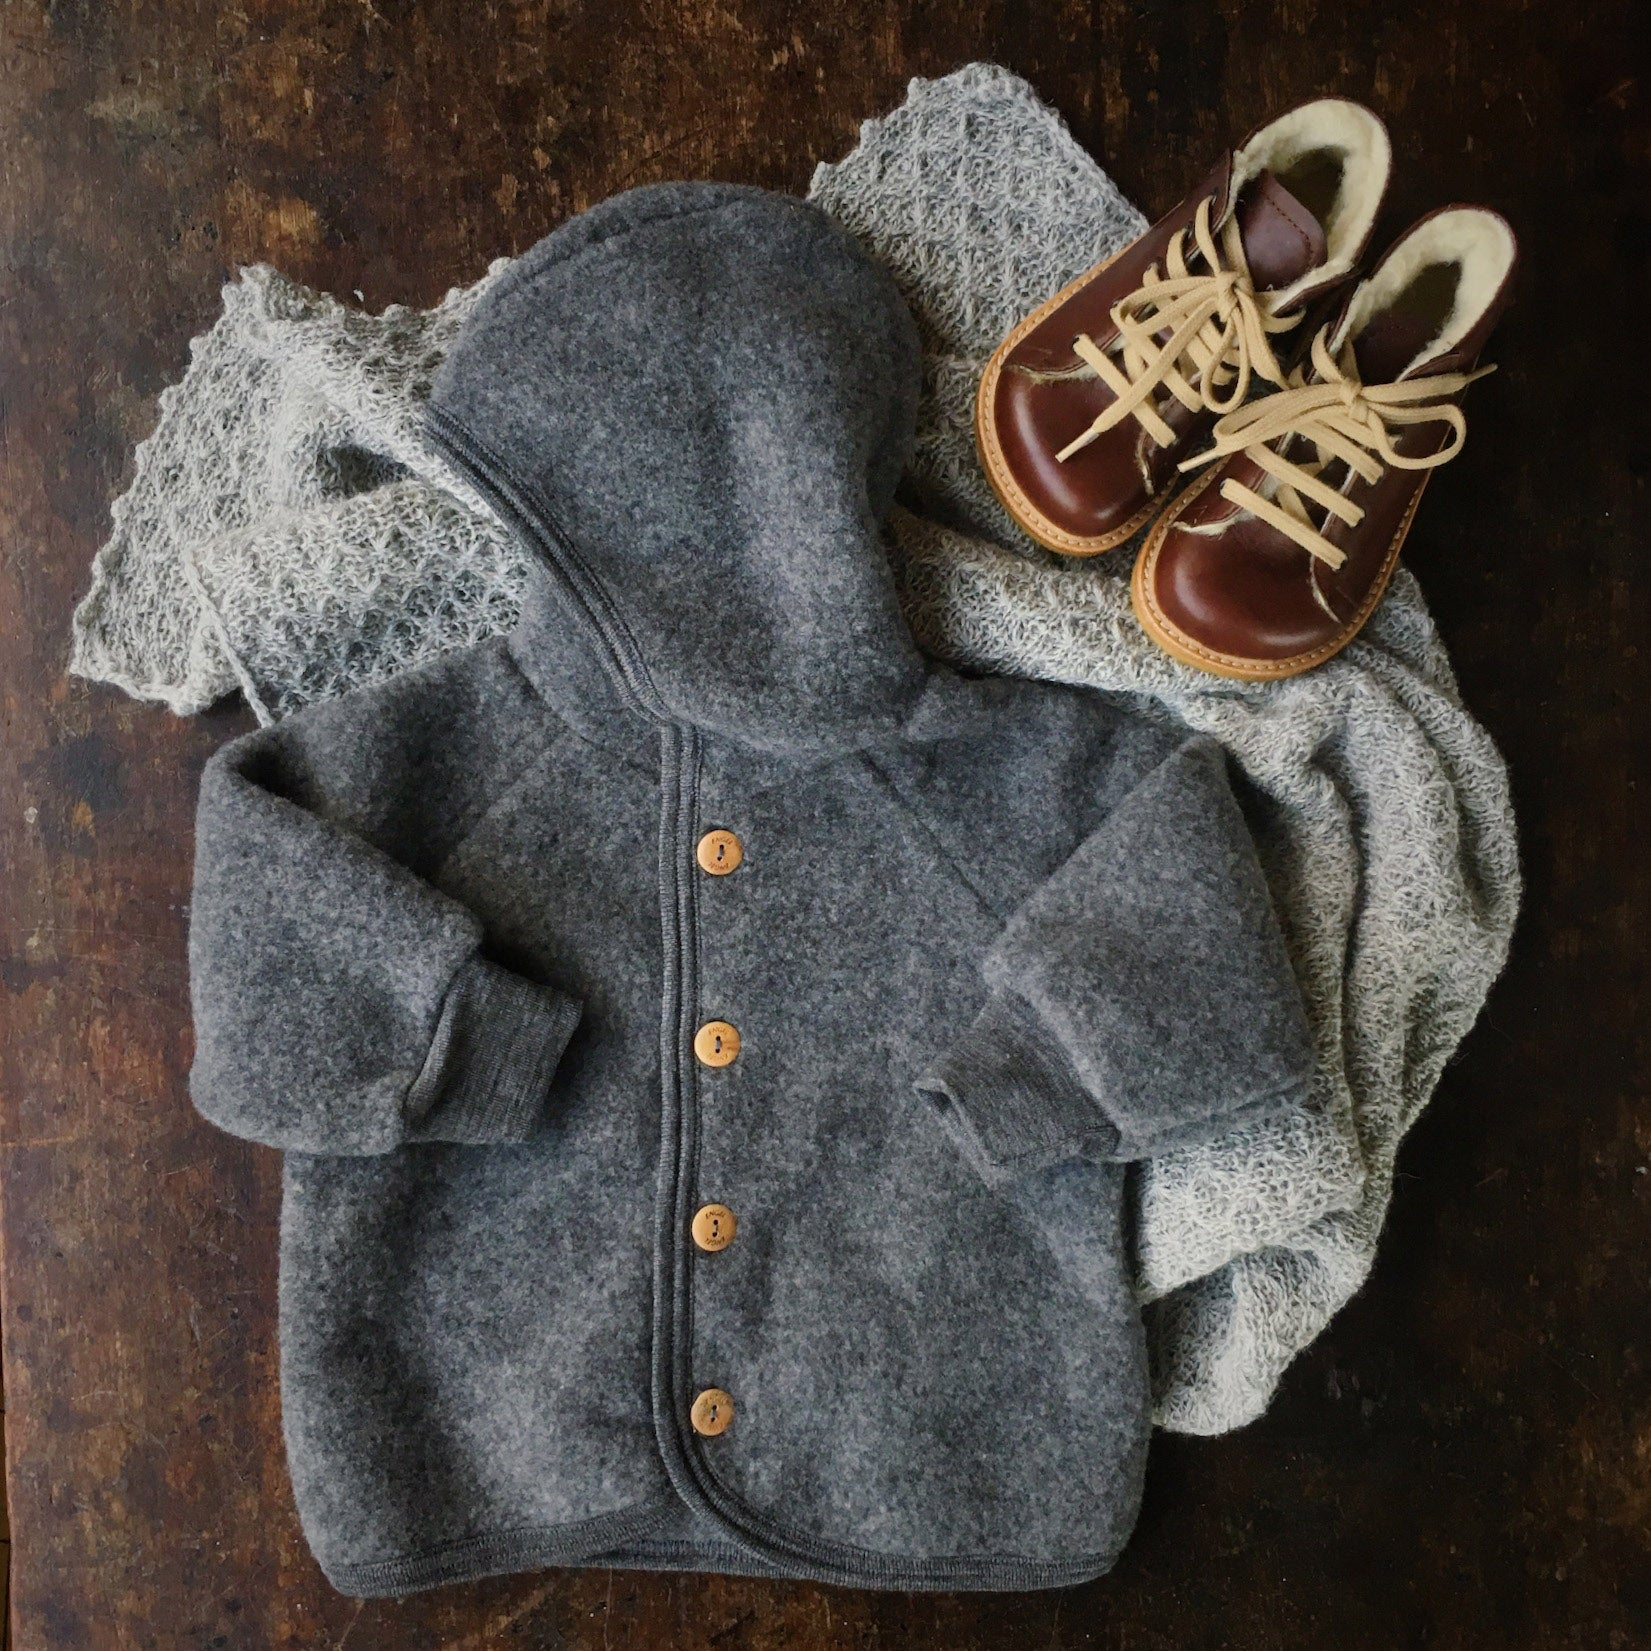 Mamaowl Merino Wool And Organic Clothes For Babies And Kids 0 8 Years